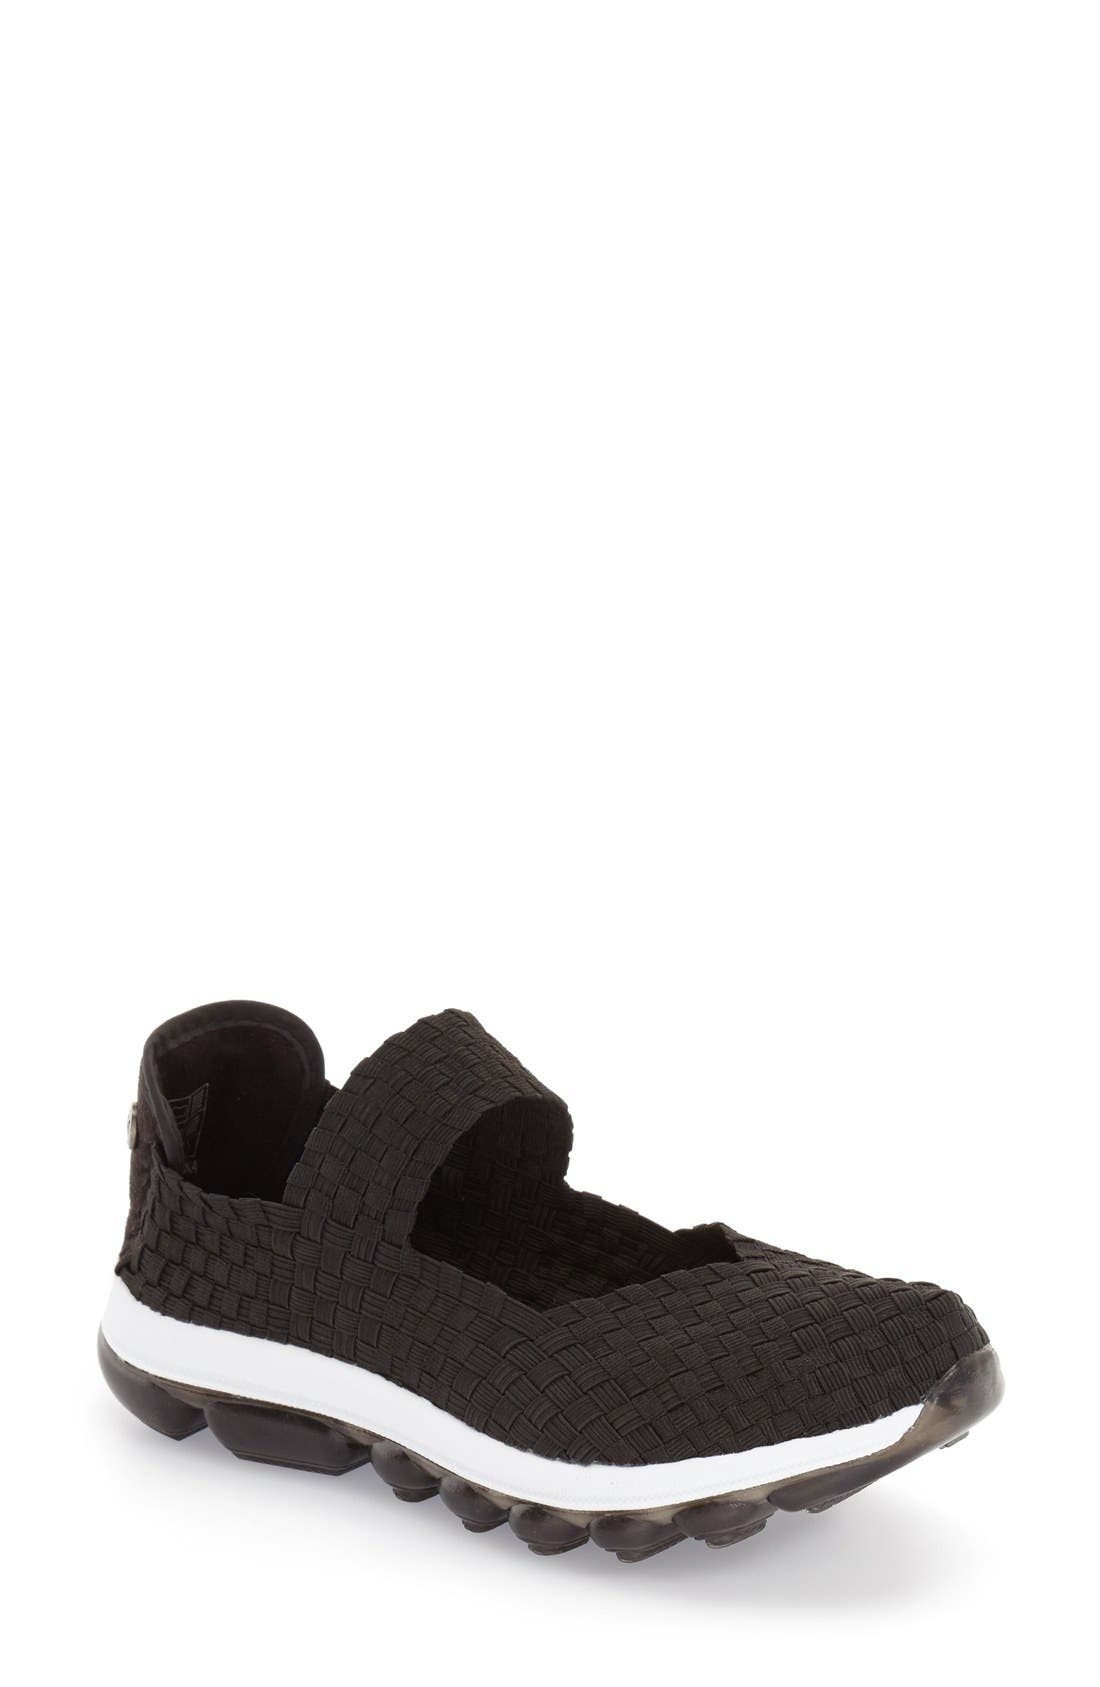 'Gummies Charm' Stretch Woven Slip-On Sneaker,                         Main,                         color, 001